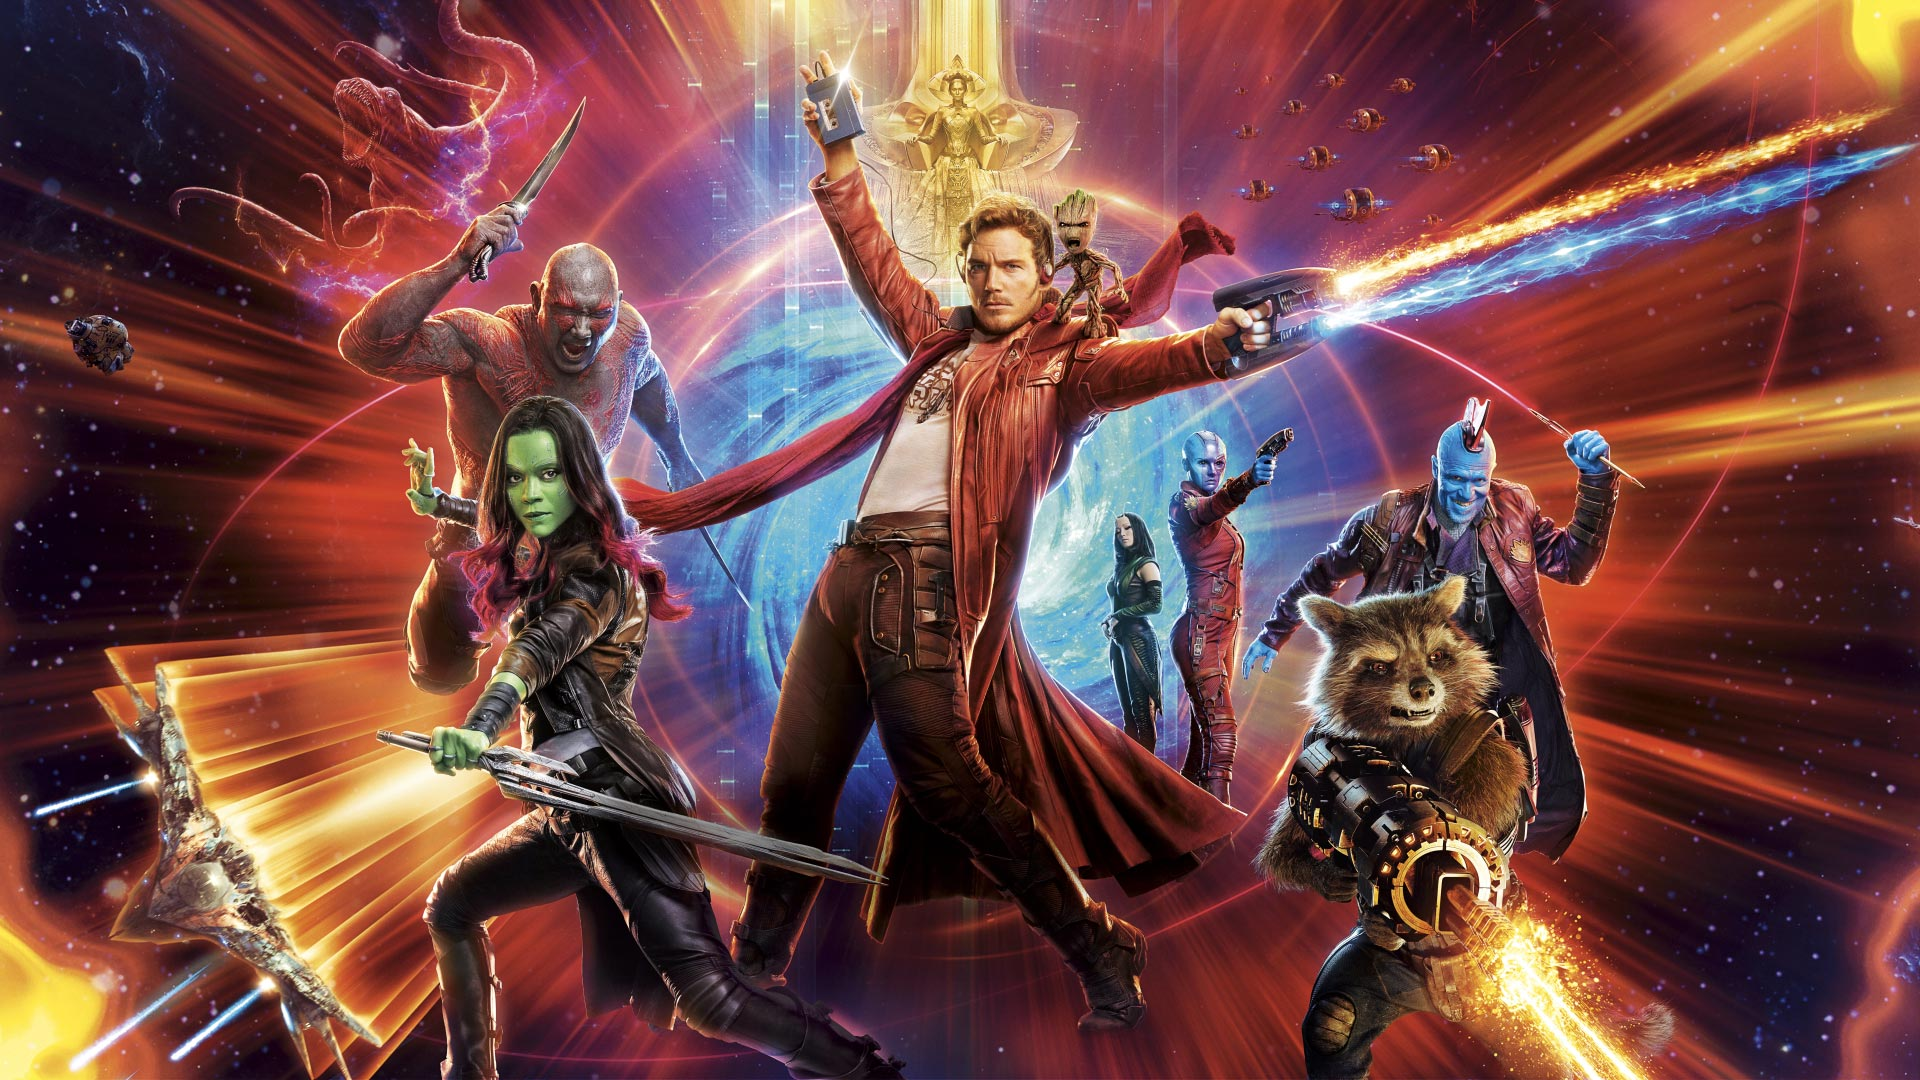 Guardians of the Galaxy movies ranked